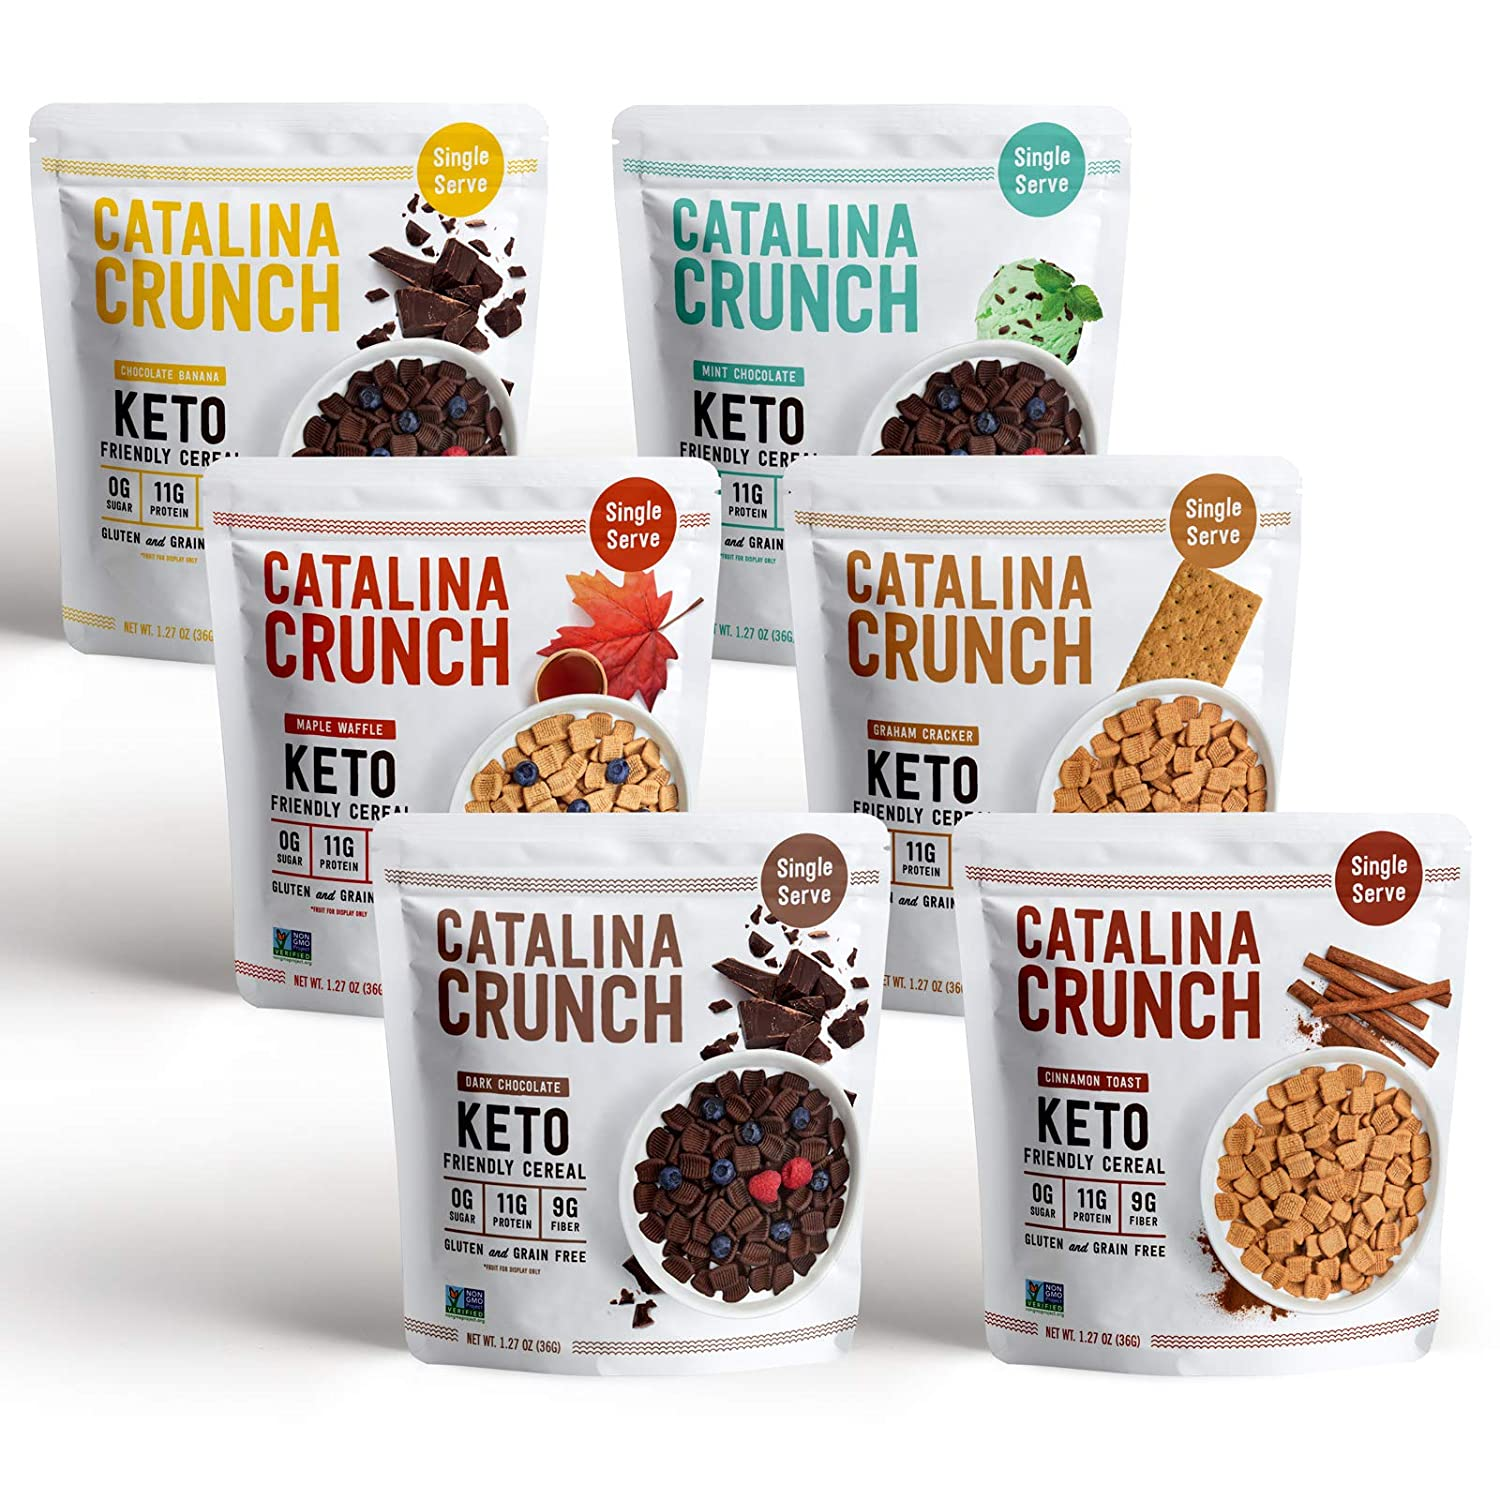 Catalina Crunch Keto Cereal Single Serve Pouches (1.27oz/pouch) 6 Flavors Variety Pack: Keto Friendly, Low Carb, Zero Sugar, Plant Protein, High Fiber, Gluten & Grain Free